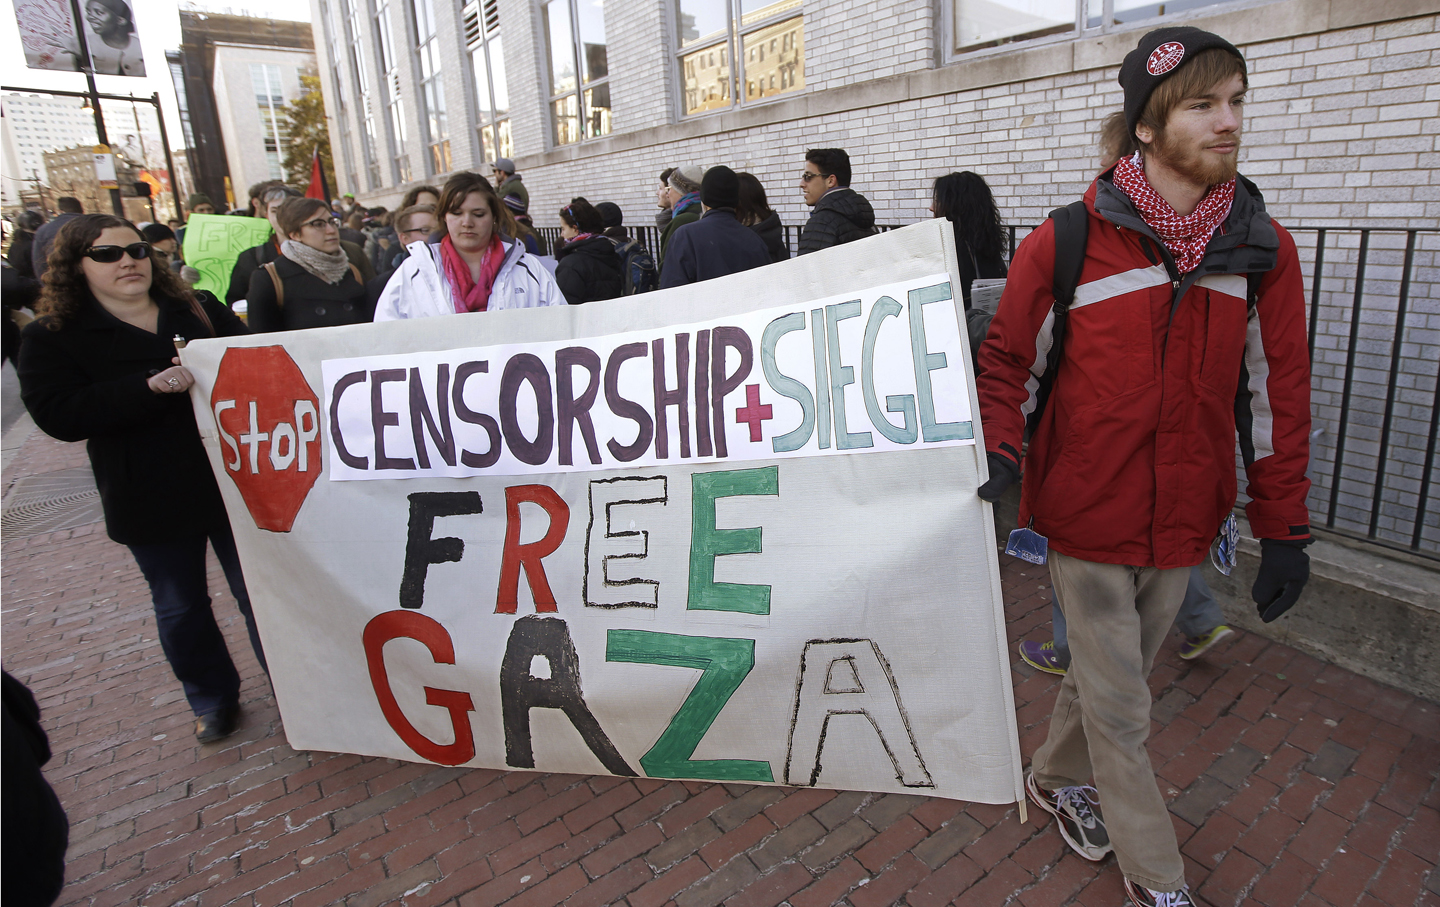 A protest at Northeastern University following the suspension of its Students for Justice in Palestine chapter.